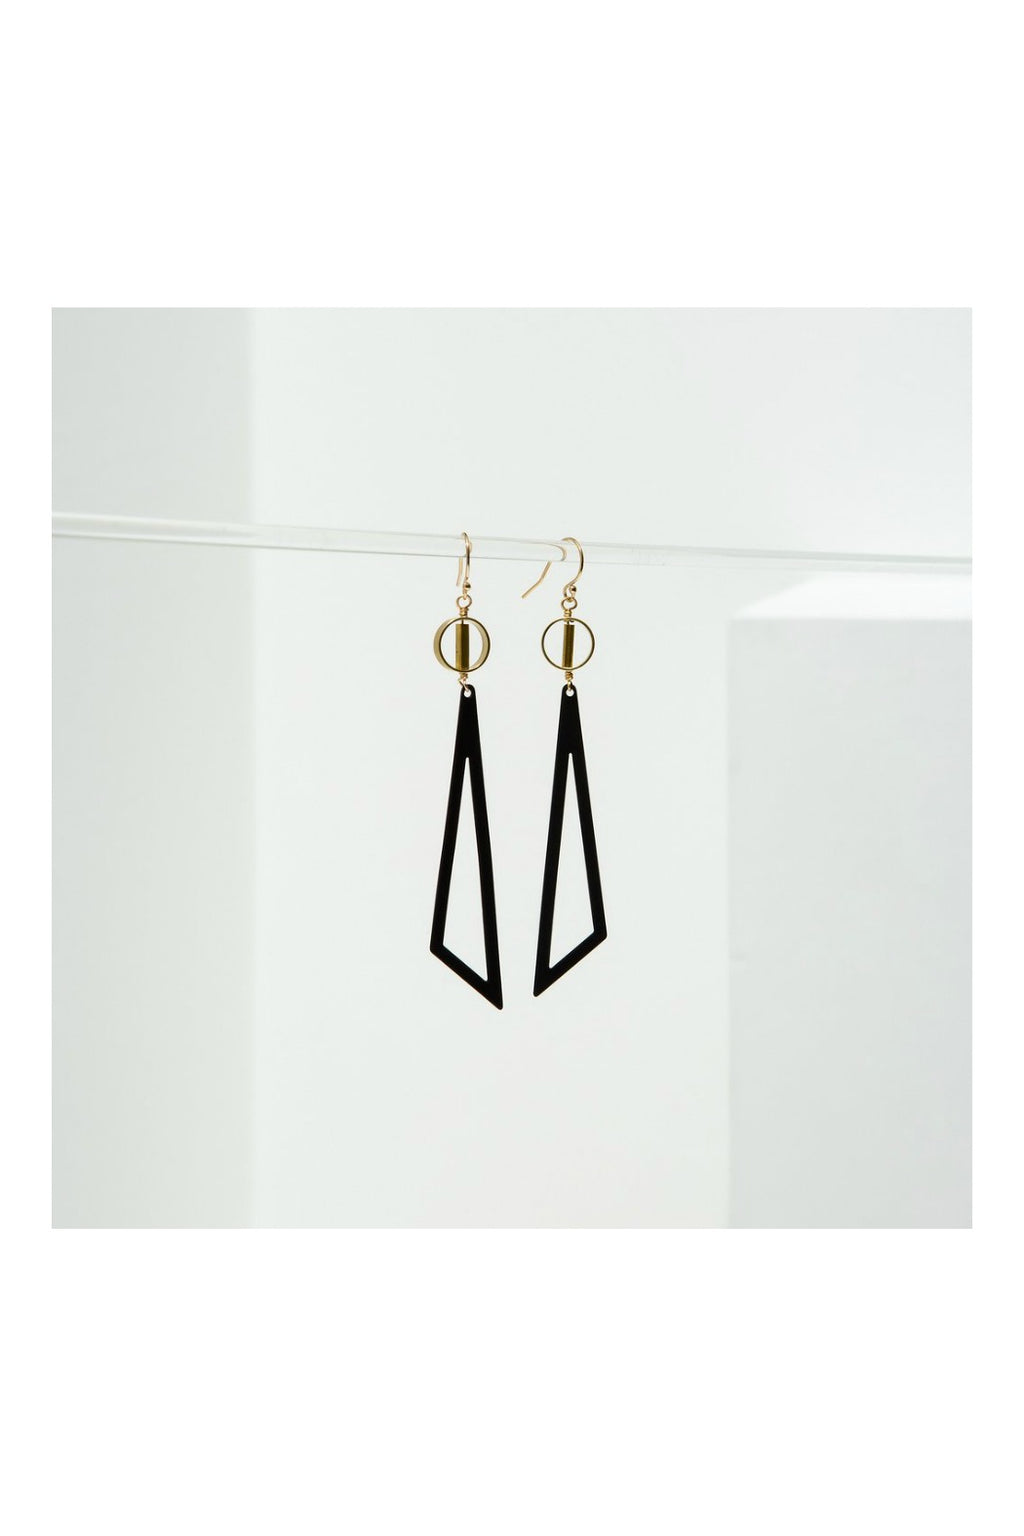 Larissa Loden Tilde Earrings - Black